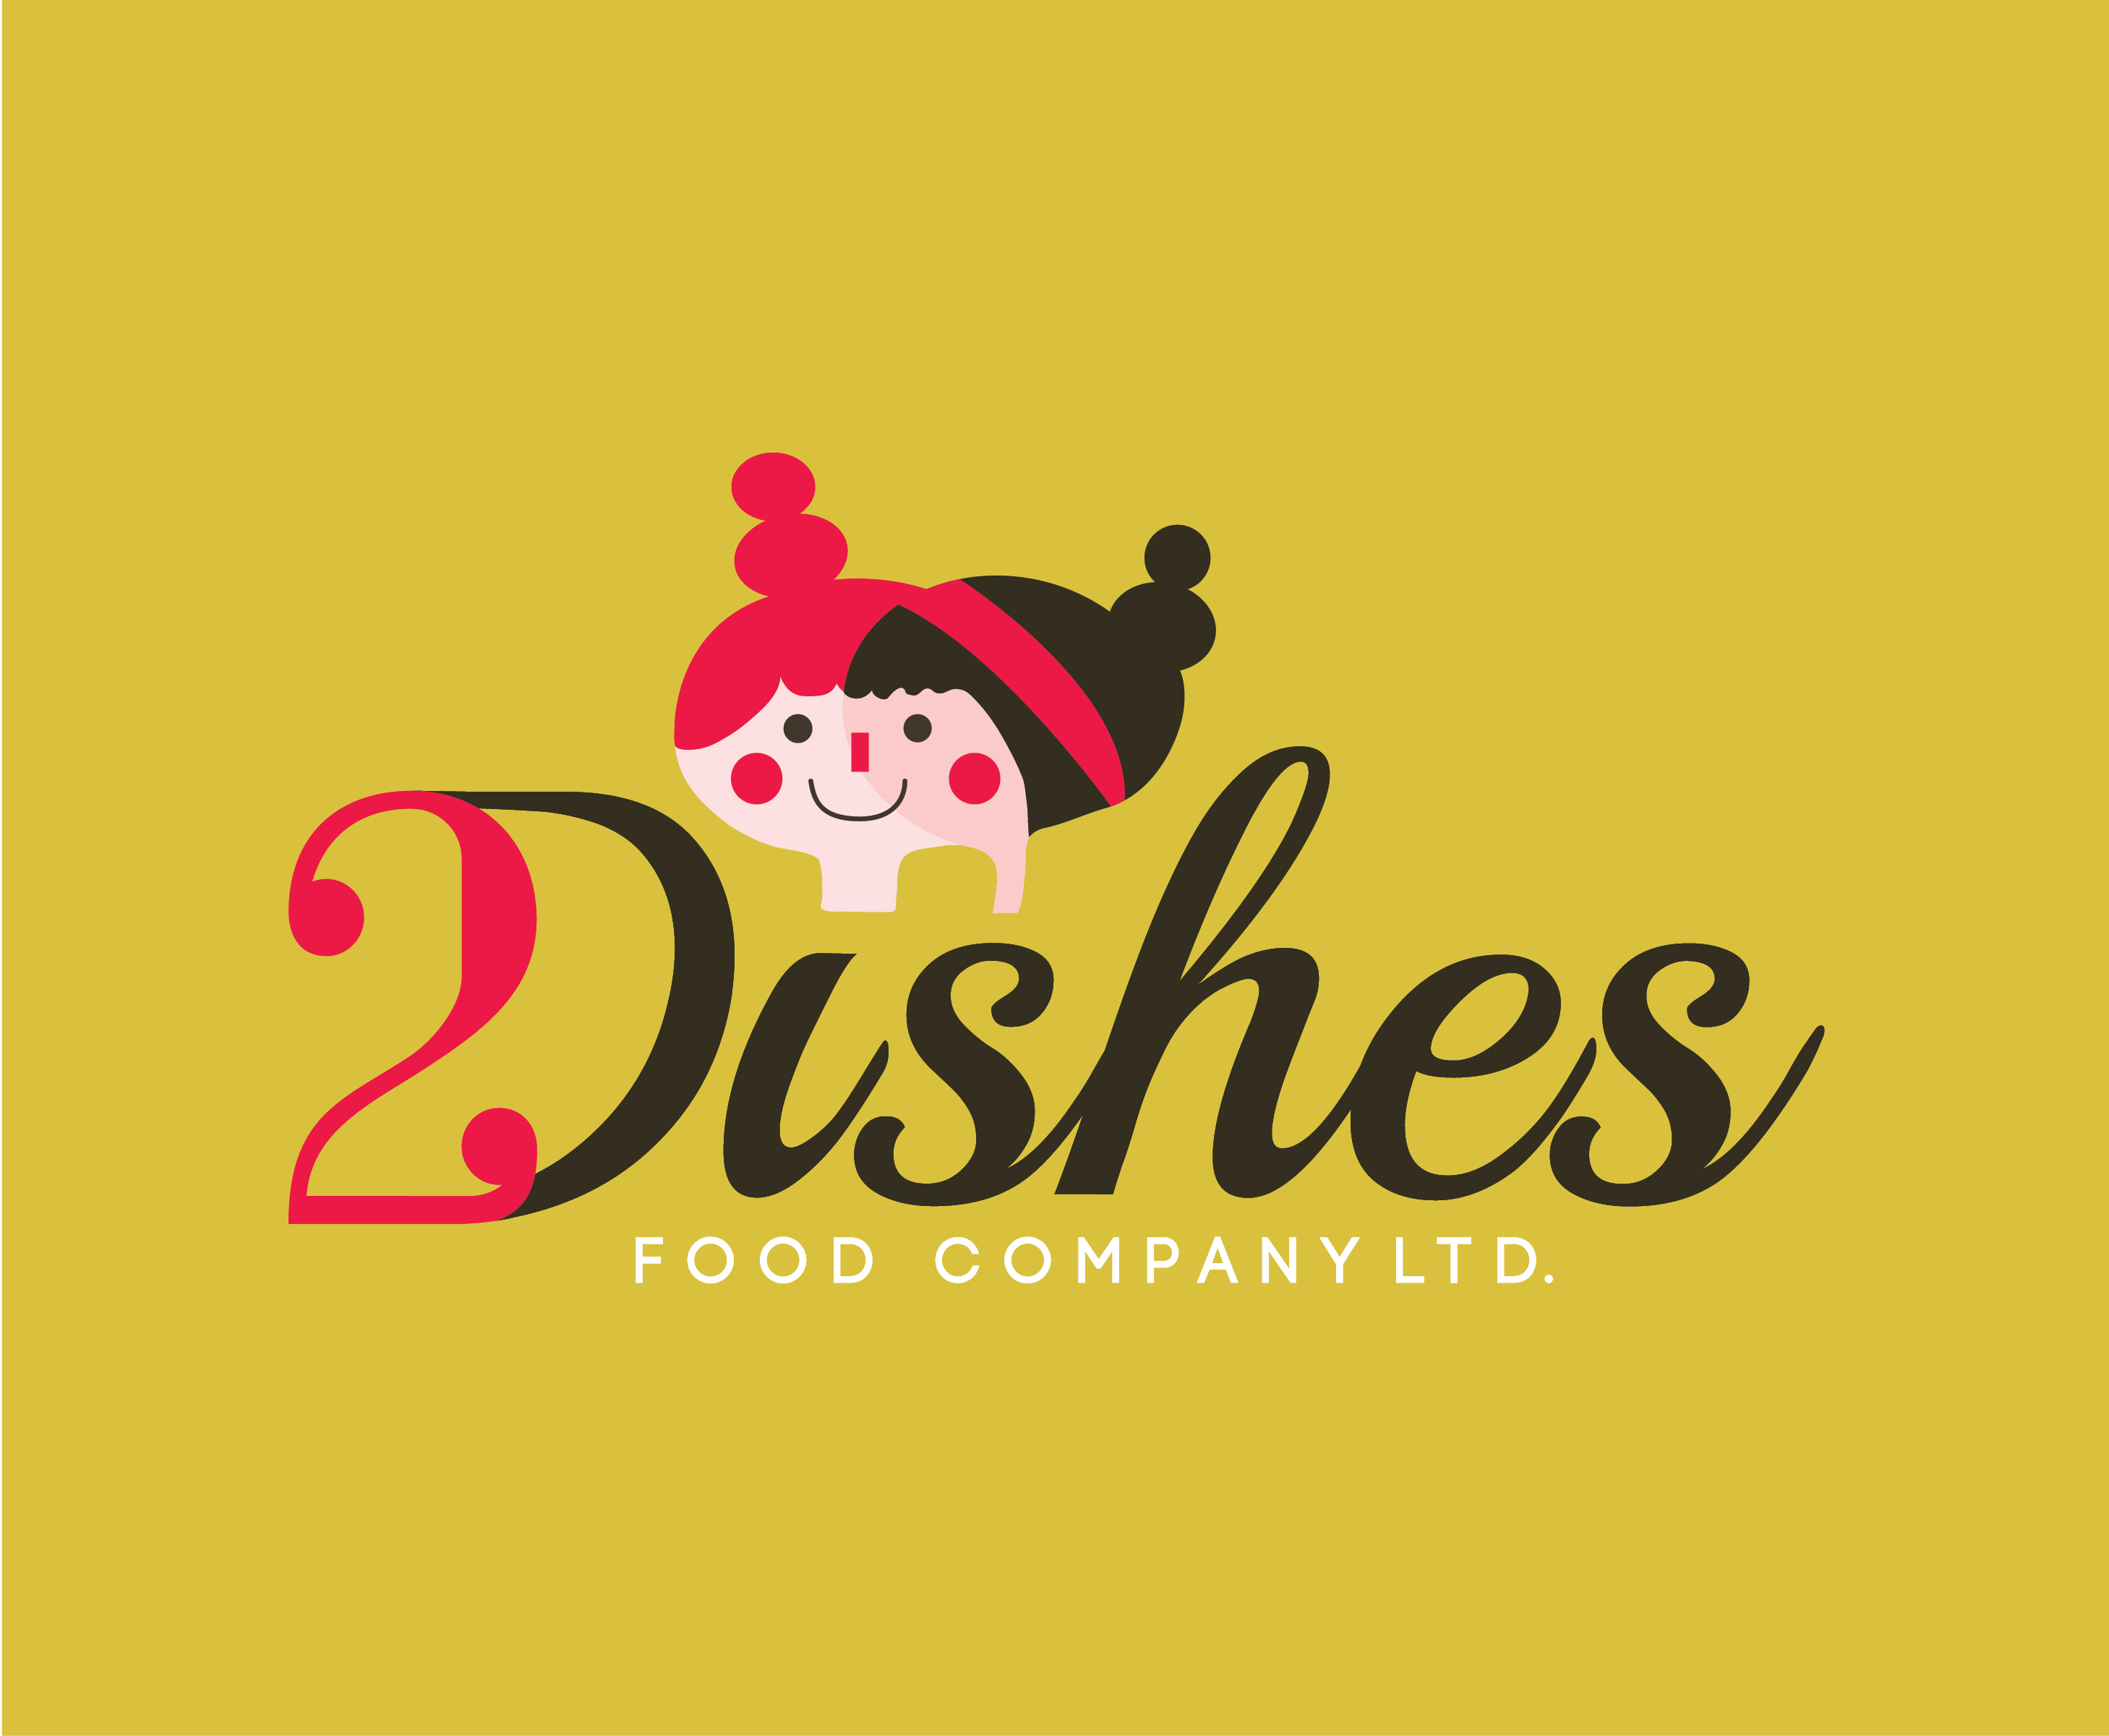 2 Dishes Food Company, Logo, Branding